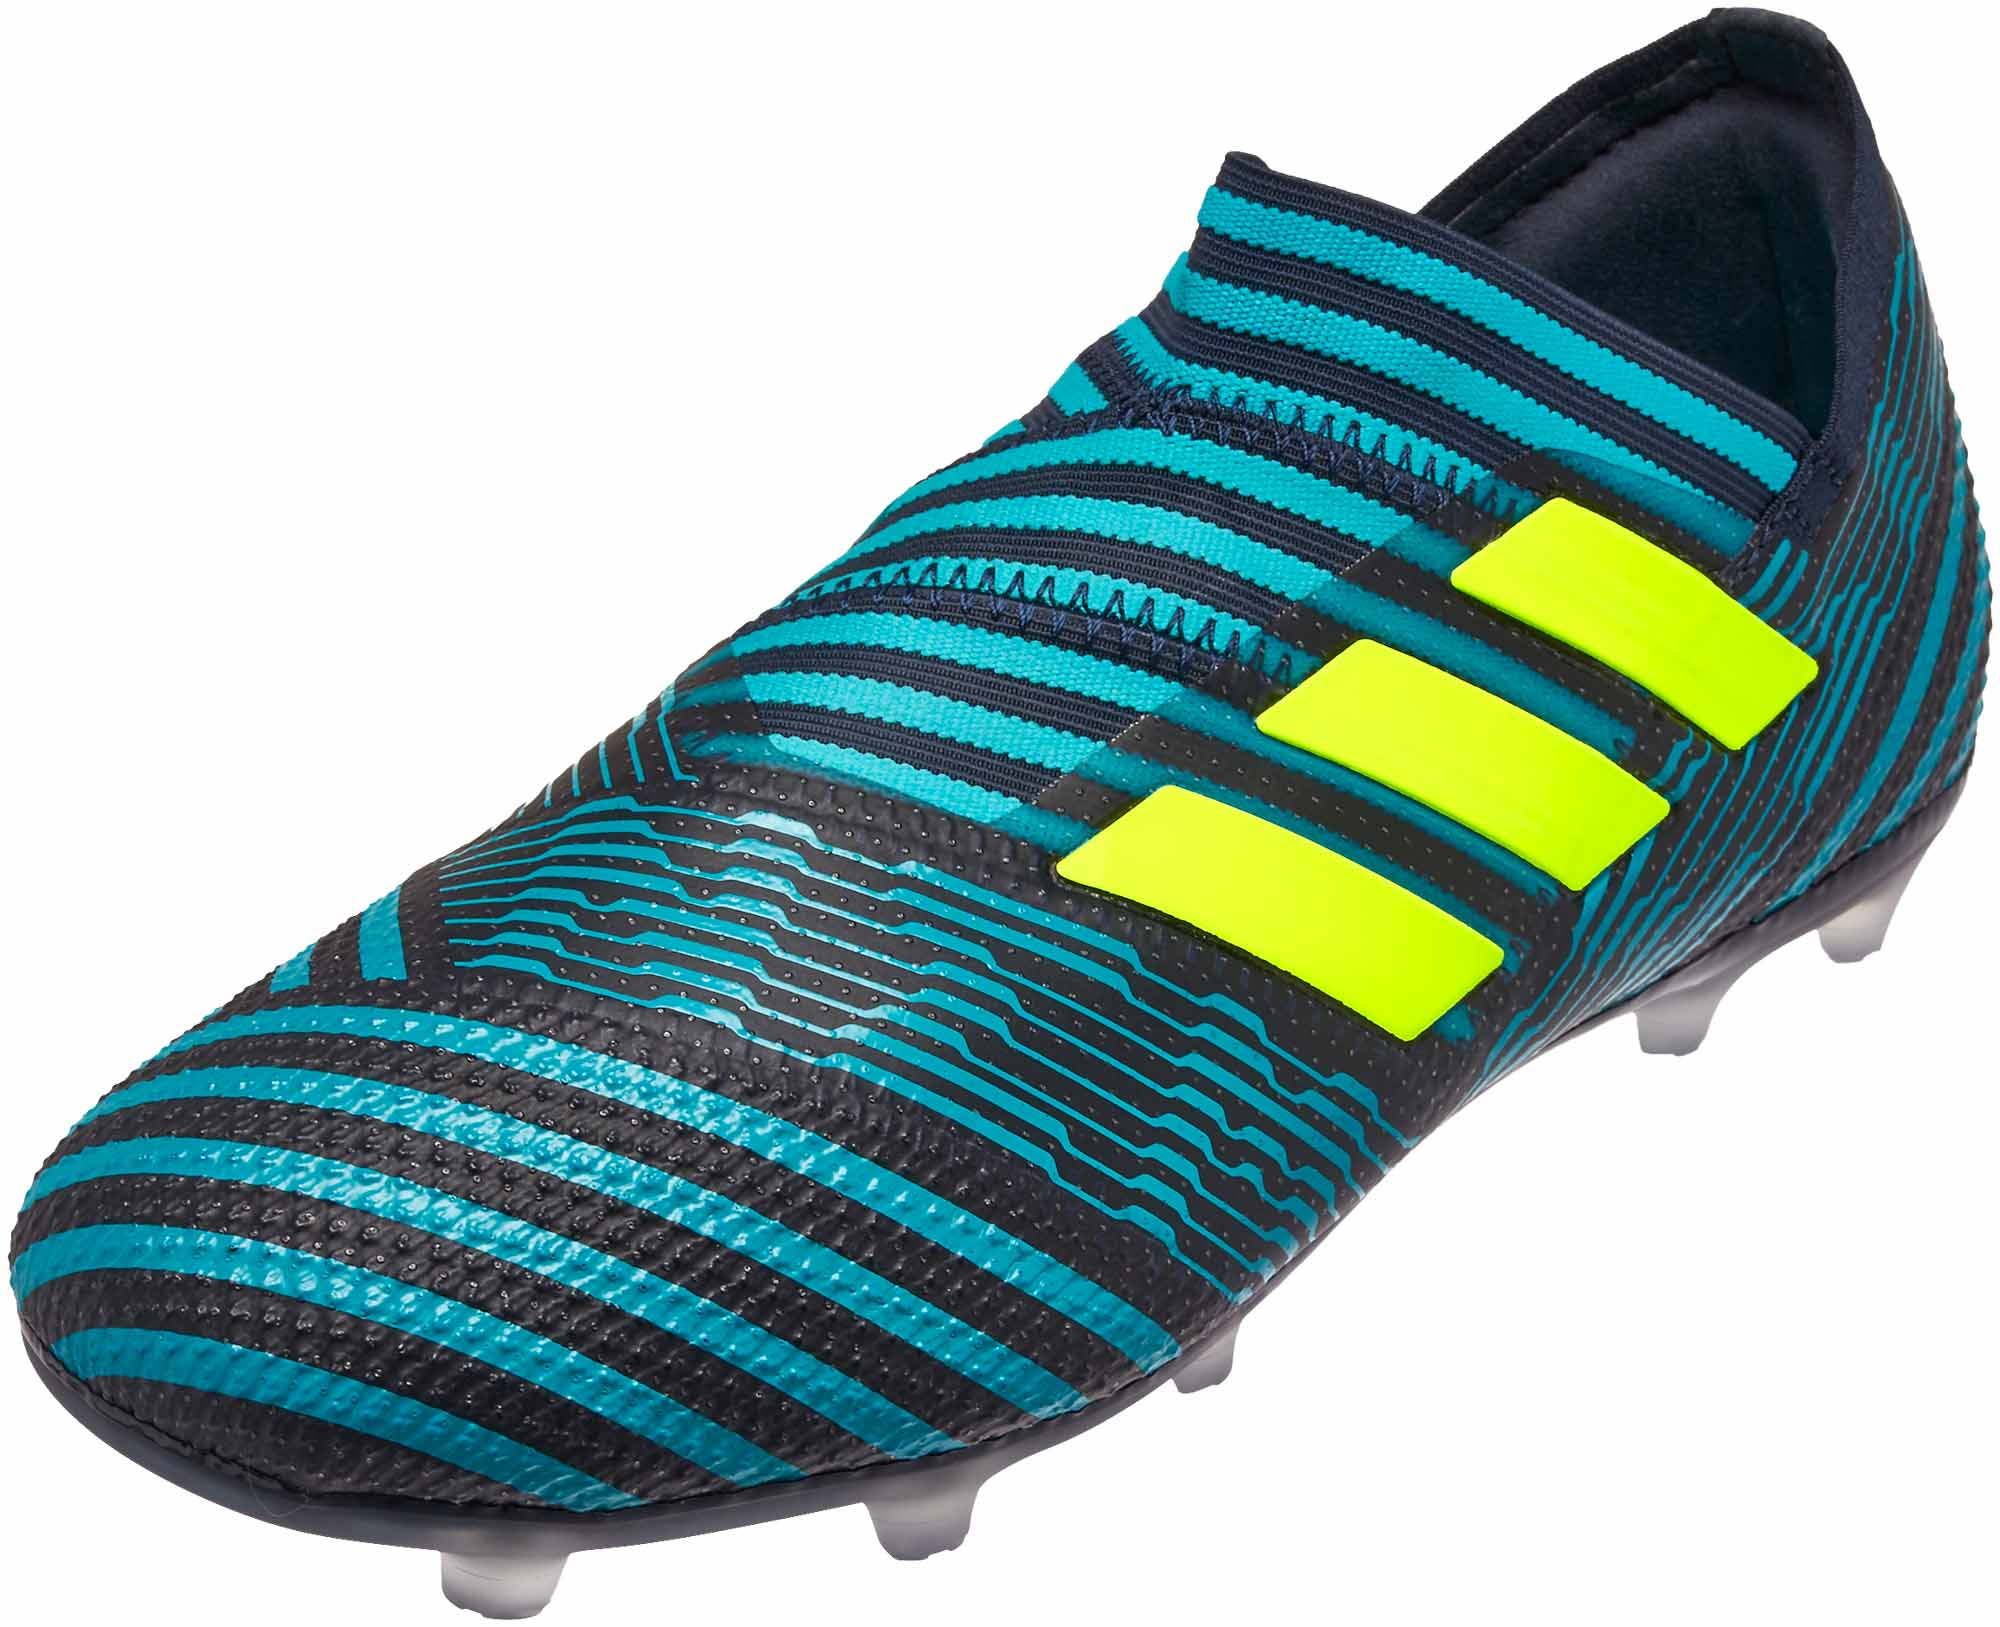 9e95cab5d70fdb Kids adidas Nemeziz 17+ 360Agility FG Soccer Cleats – Legend Ink   Solar  Yellow